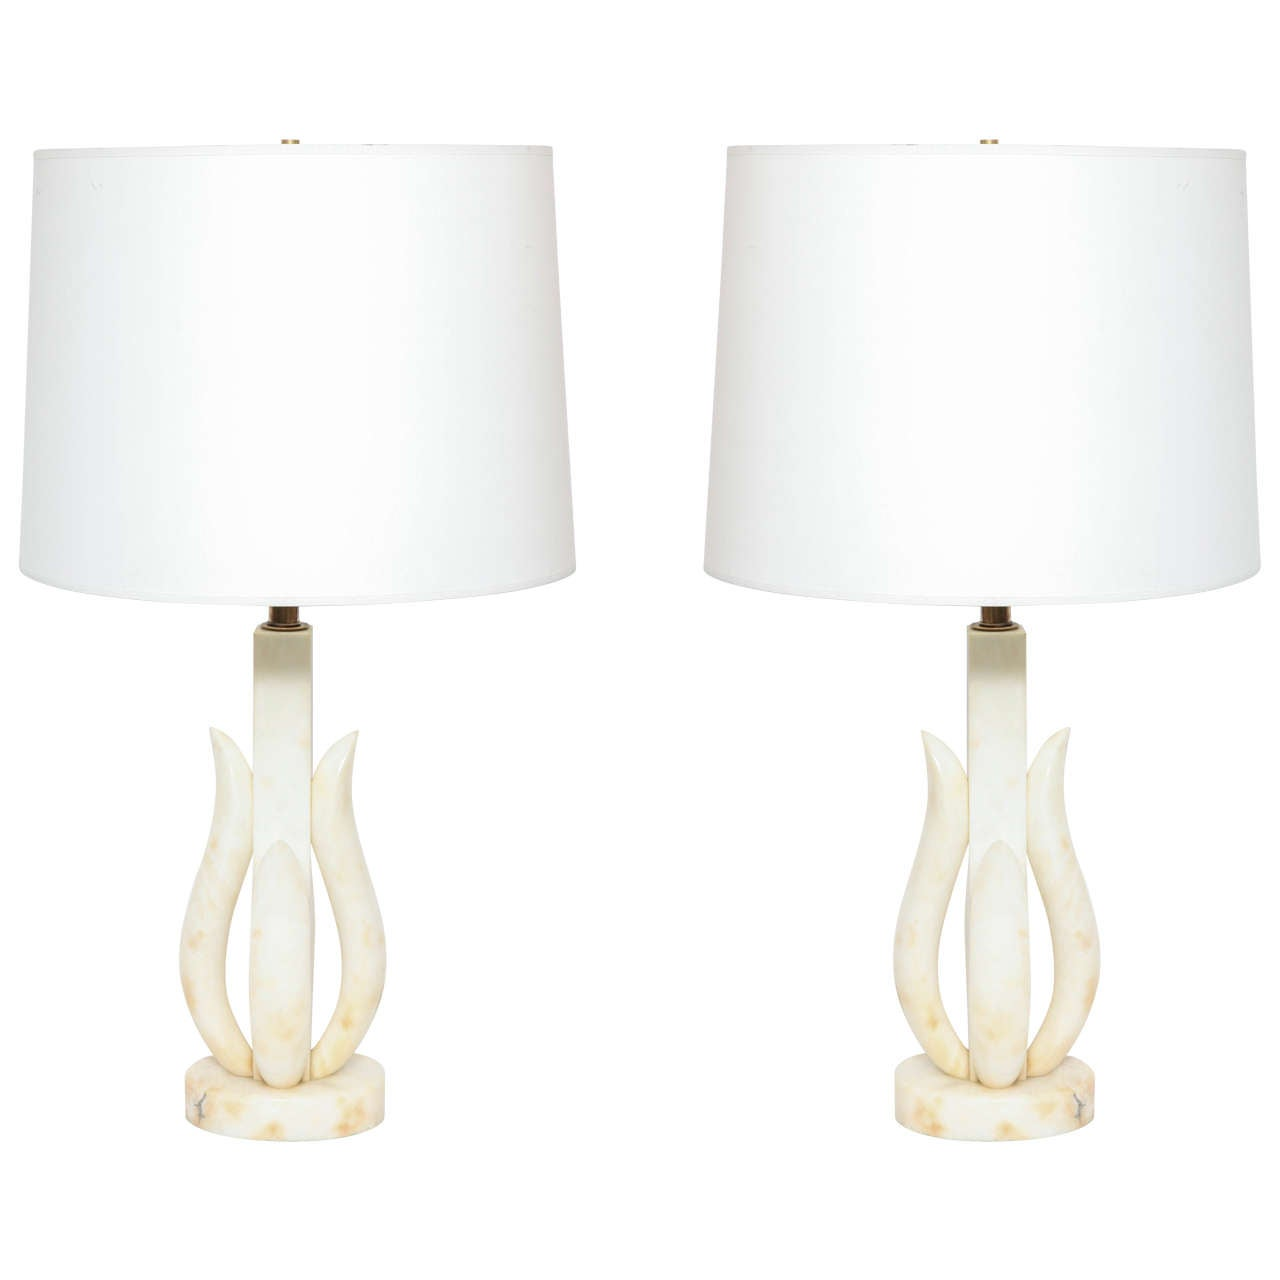 Pair of 1950s Italian Alabaster Table Lamps